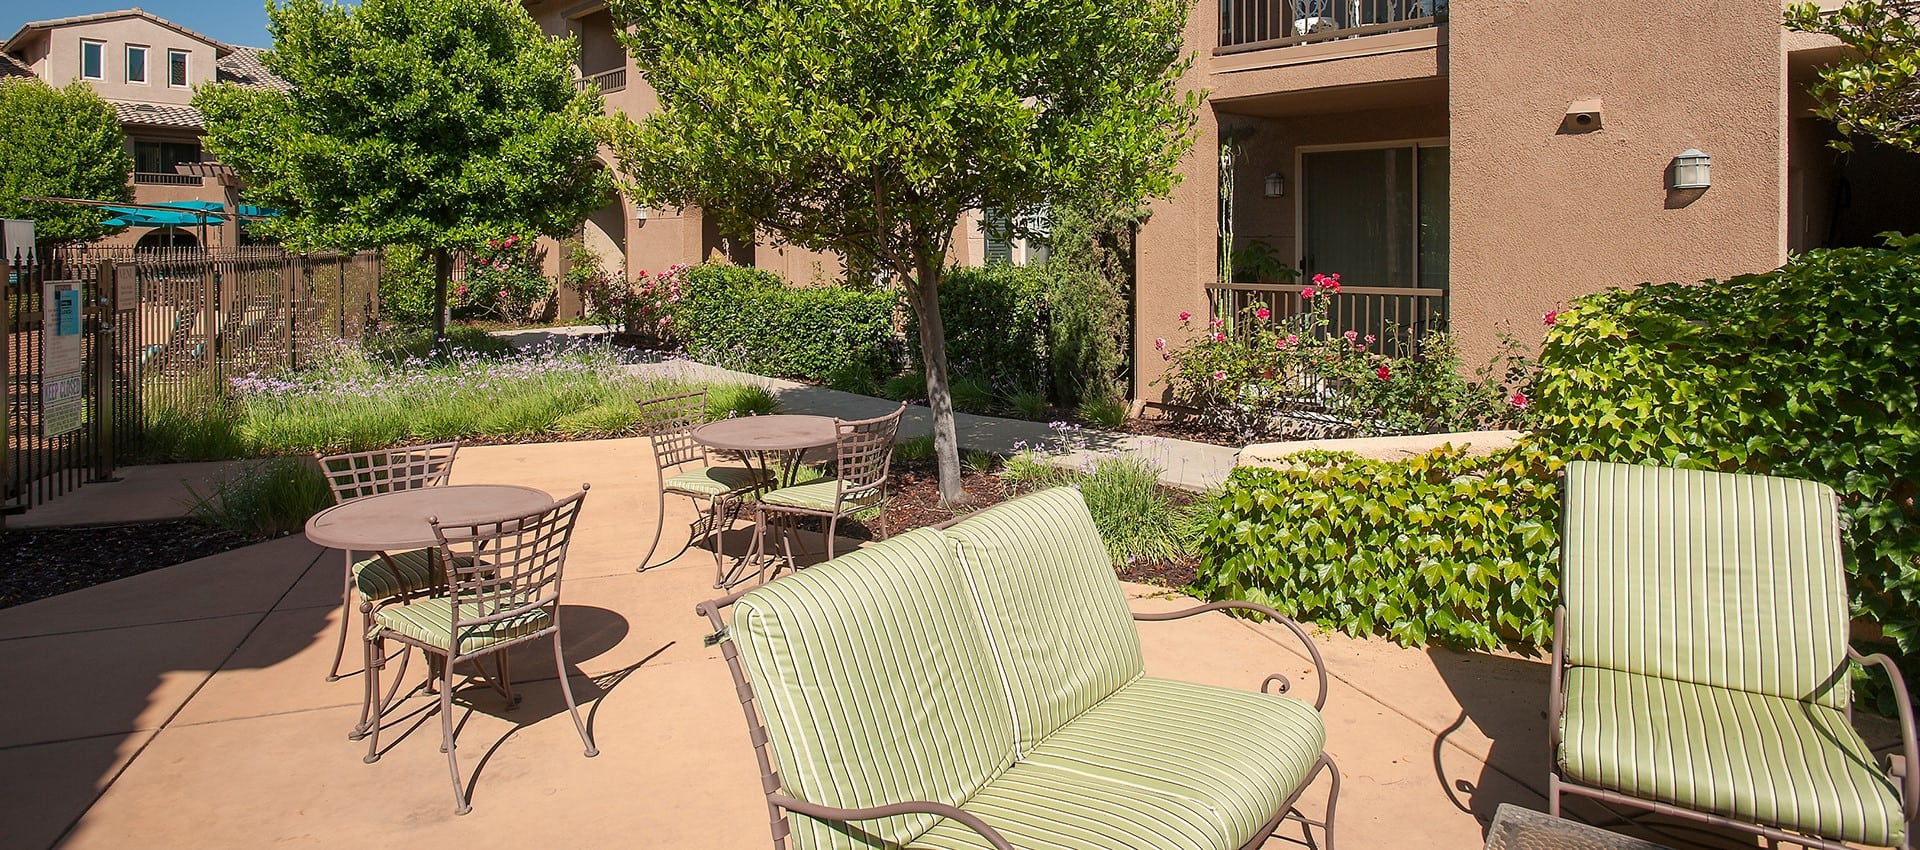 Outdoor seating at Venu at Galleria Condominium Rentals in Roseville, California